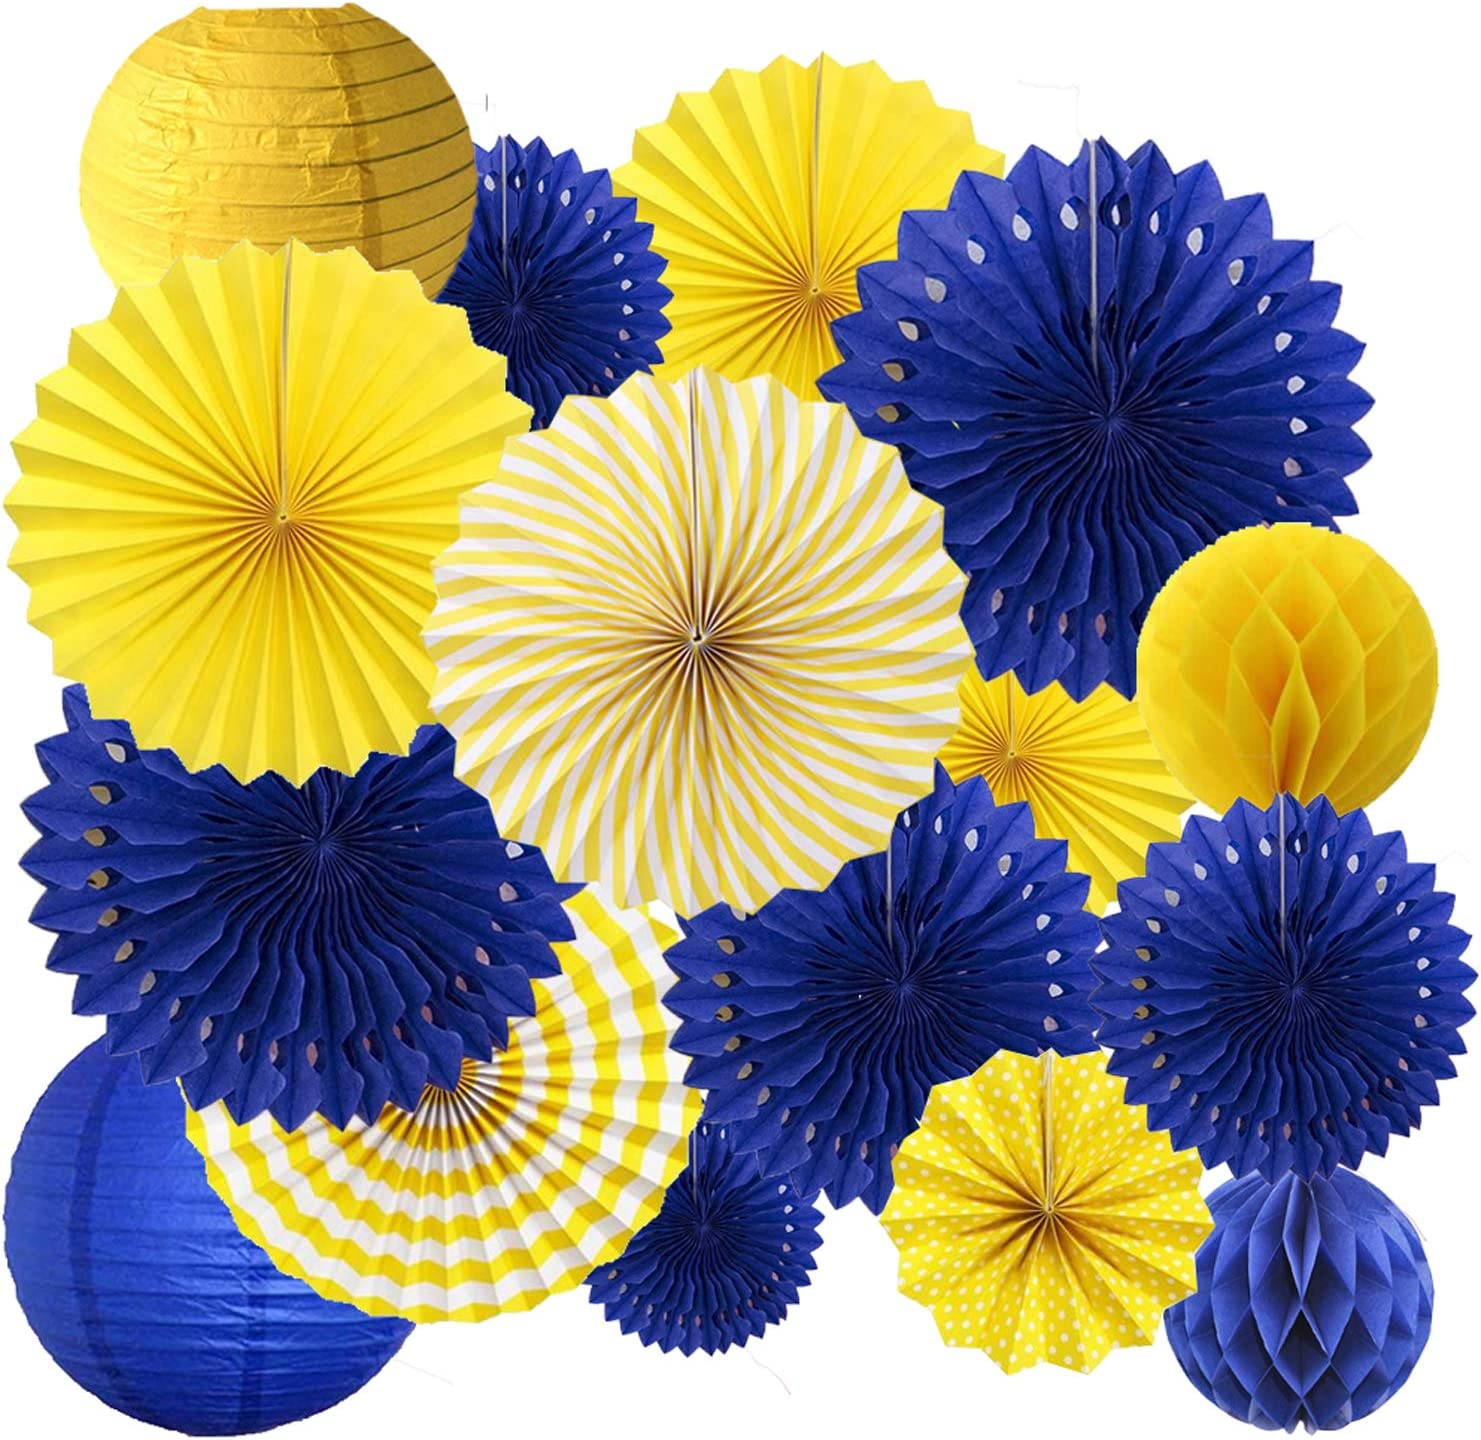 16PCS Yellow Royal Blue Birthday Graduation Party Congrats Grad Decoration Supplies Hanging Paper Fan Rosettes Honeycomb Ball Lanterns Royal Prince Boy Baby Shower Wedding Bridal Shower Photo Backdrop